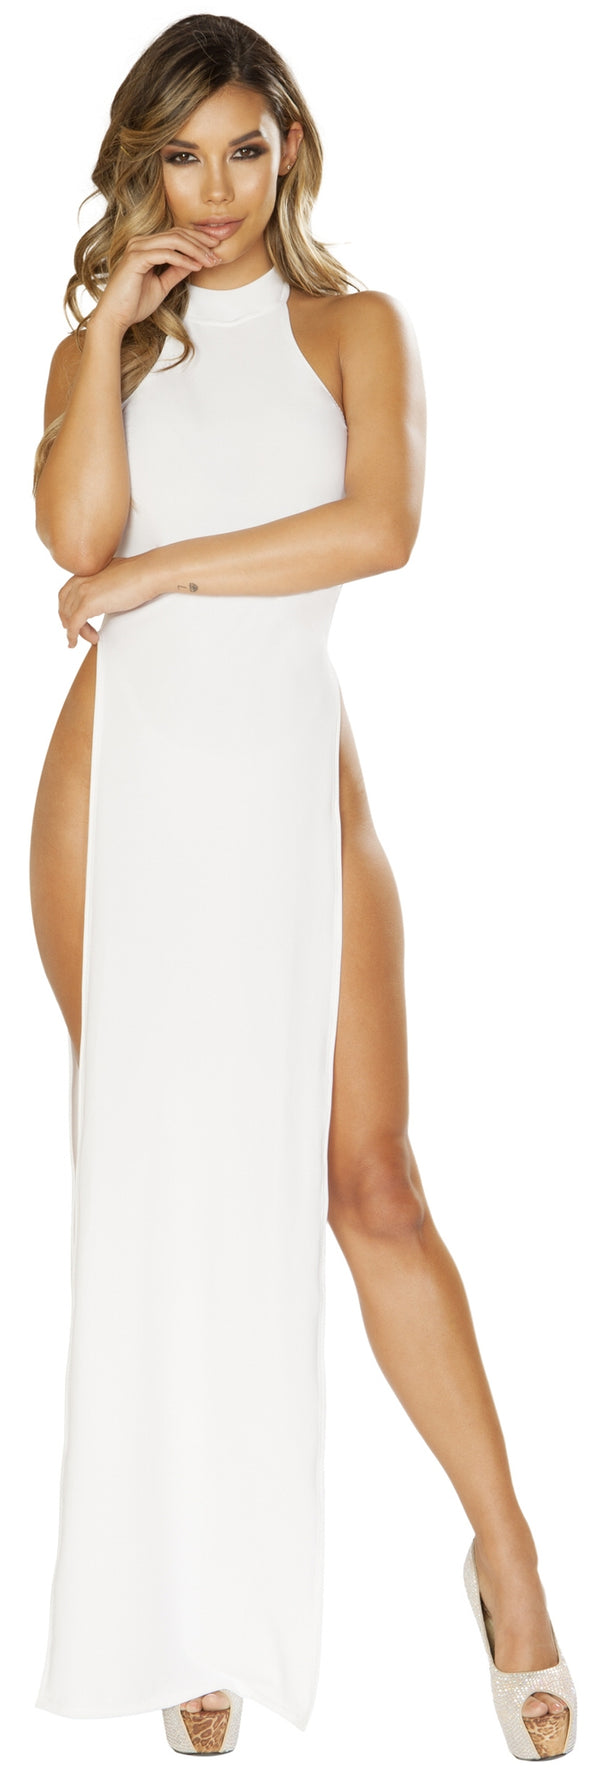 RM-3656 High Cut White Maxi Dress with high side slits